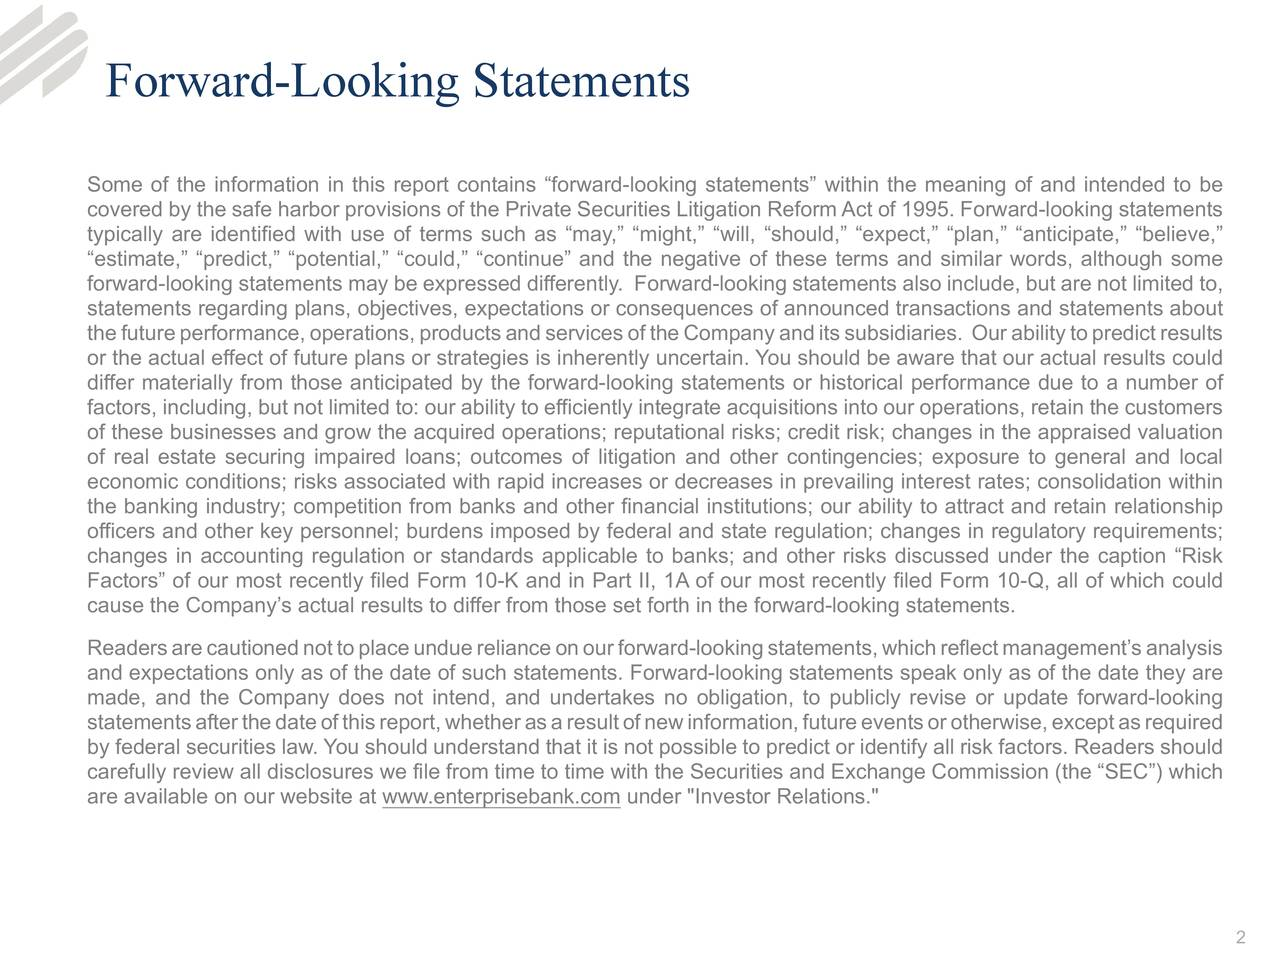 """Some of the information in this report contains """"forward-looking statements"""" within the meaning of and intended to be covered by the safe harbor provisions of the Private Securities Litigation Reform Act of 1995. Forward-looking statements typically are identified with use of terms such as """"may,"""" """"might,"""" """"will, """"should,"""" """"expect,"""" """"plan,"""" """"anticipate,"""" """"believe,"""" """"estimate,"""" """"predict,"""" """"potential,"""" """"could,"""" """"continue"""" and the negative of these terms and similar words, although some forward-looking statements may be expressed differently. Forward-looking statements also include, but are not limited to, statements regarding plans, objectives, expectations or consequences of announced transactions and statements about thefutureperformance,operations,productsandservicesoftheCompanyanditssubsidiaries. Ourabilitytopredictresults or the actual effect of future plans or strategies is inherently uncertain. You should be aware that our actual results could differ materially from those anticipated by the forward-looking statements or historical performance due to a number of factors, including, but not limited to: our ability to efficiently integrate acquisitions into our operations, retain the customers of these businesses and grow the acquired operations; reputational risks; credit risk; changes in the appraised valuation of real estate securing impaired loans; outcomes of litigation and other contingencies; exposure to general and local economic conditions; risks associated with rapid increases or decreases in prevailing interest rates; consolidation within the banking industry; competition from banks and other financial institutions; our ability to attract and retain relationship officers and other key personnel; burdens imposed by federal and state regulation; changes in regulatory requirements; changes in accounting regulation or standards applicable to banks; and other risks discussed under the caption """"Risk Factors"""" of our most recently filed Form 10-K and in Part II,"""